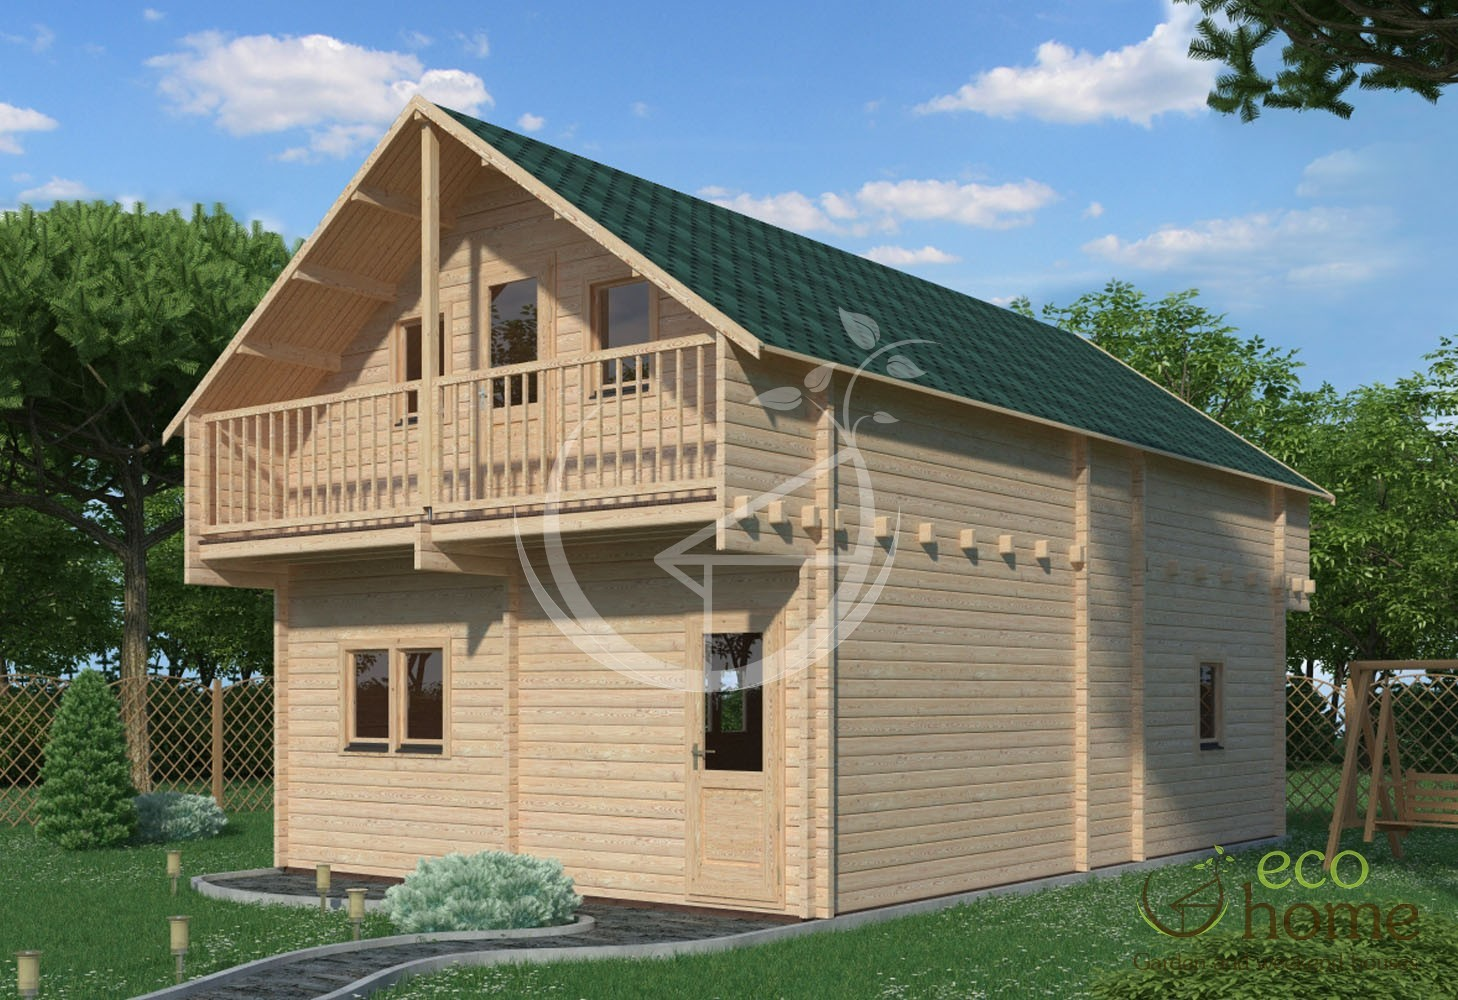 Two storey log cabin verona x log cabins ireland for 4 bed log cabins for sale